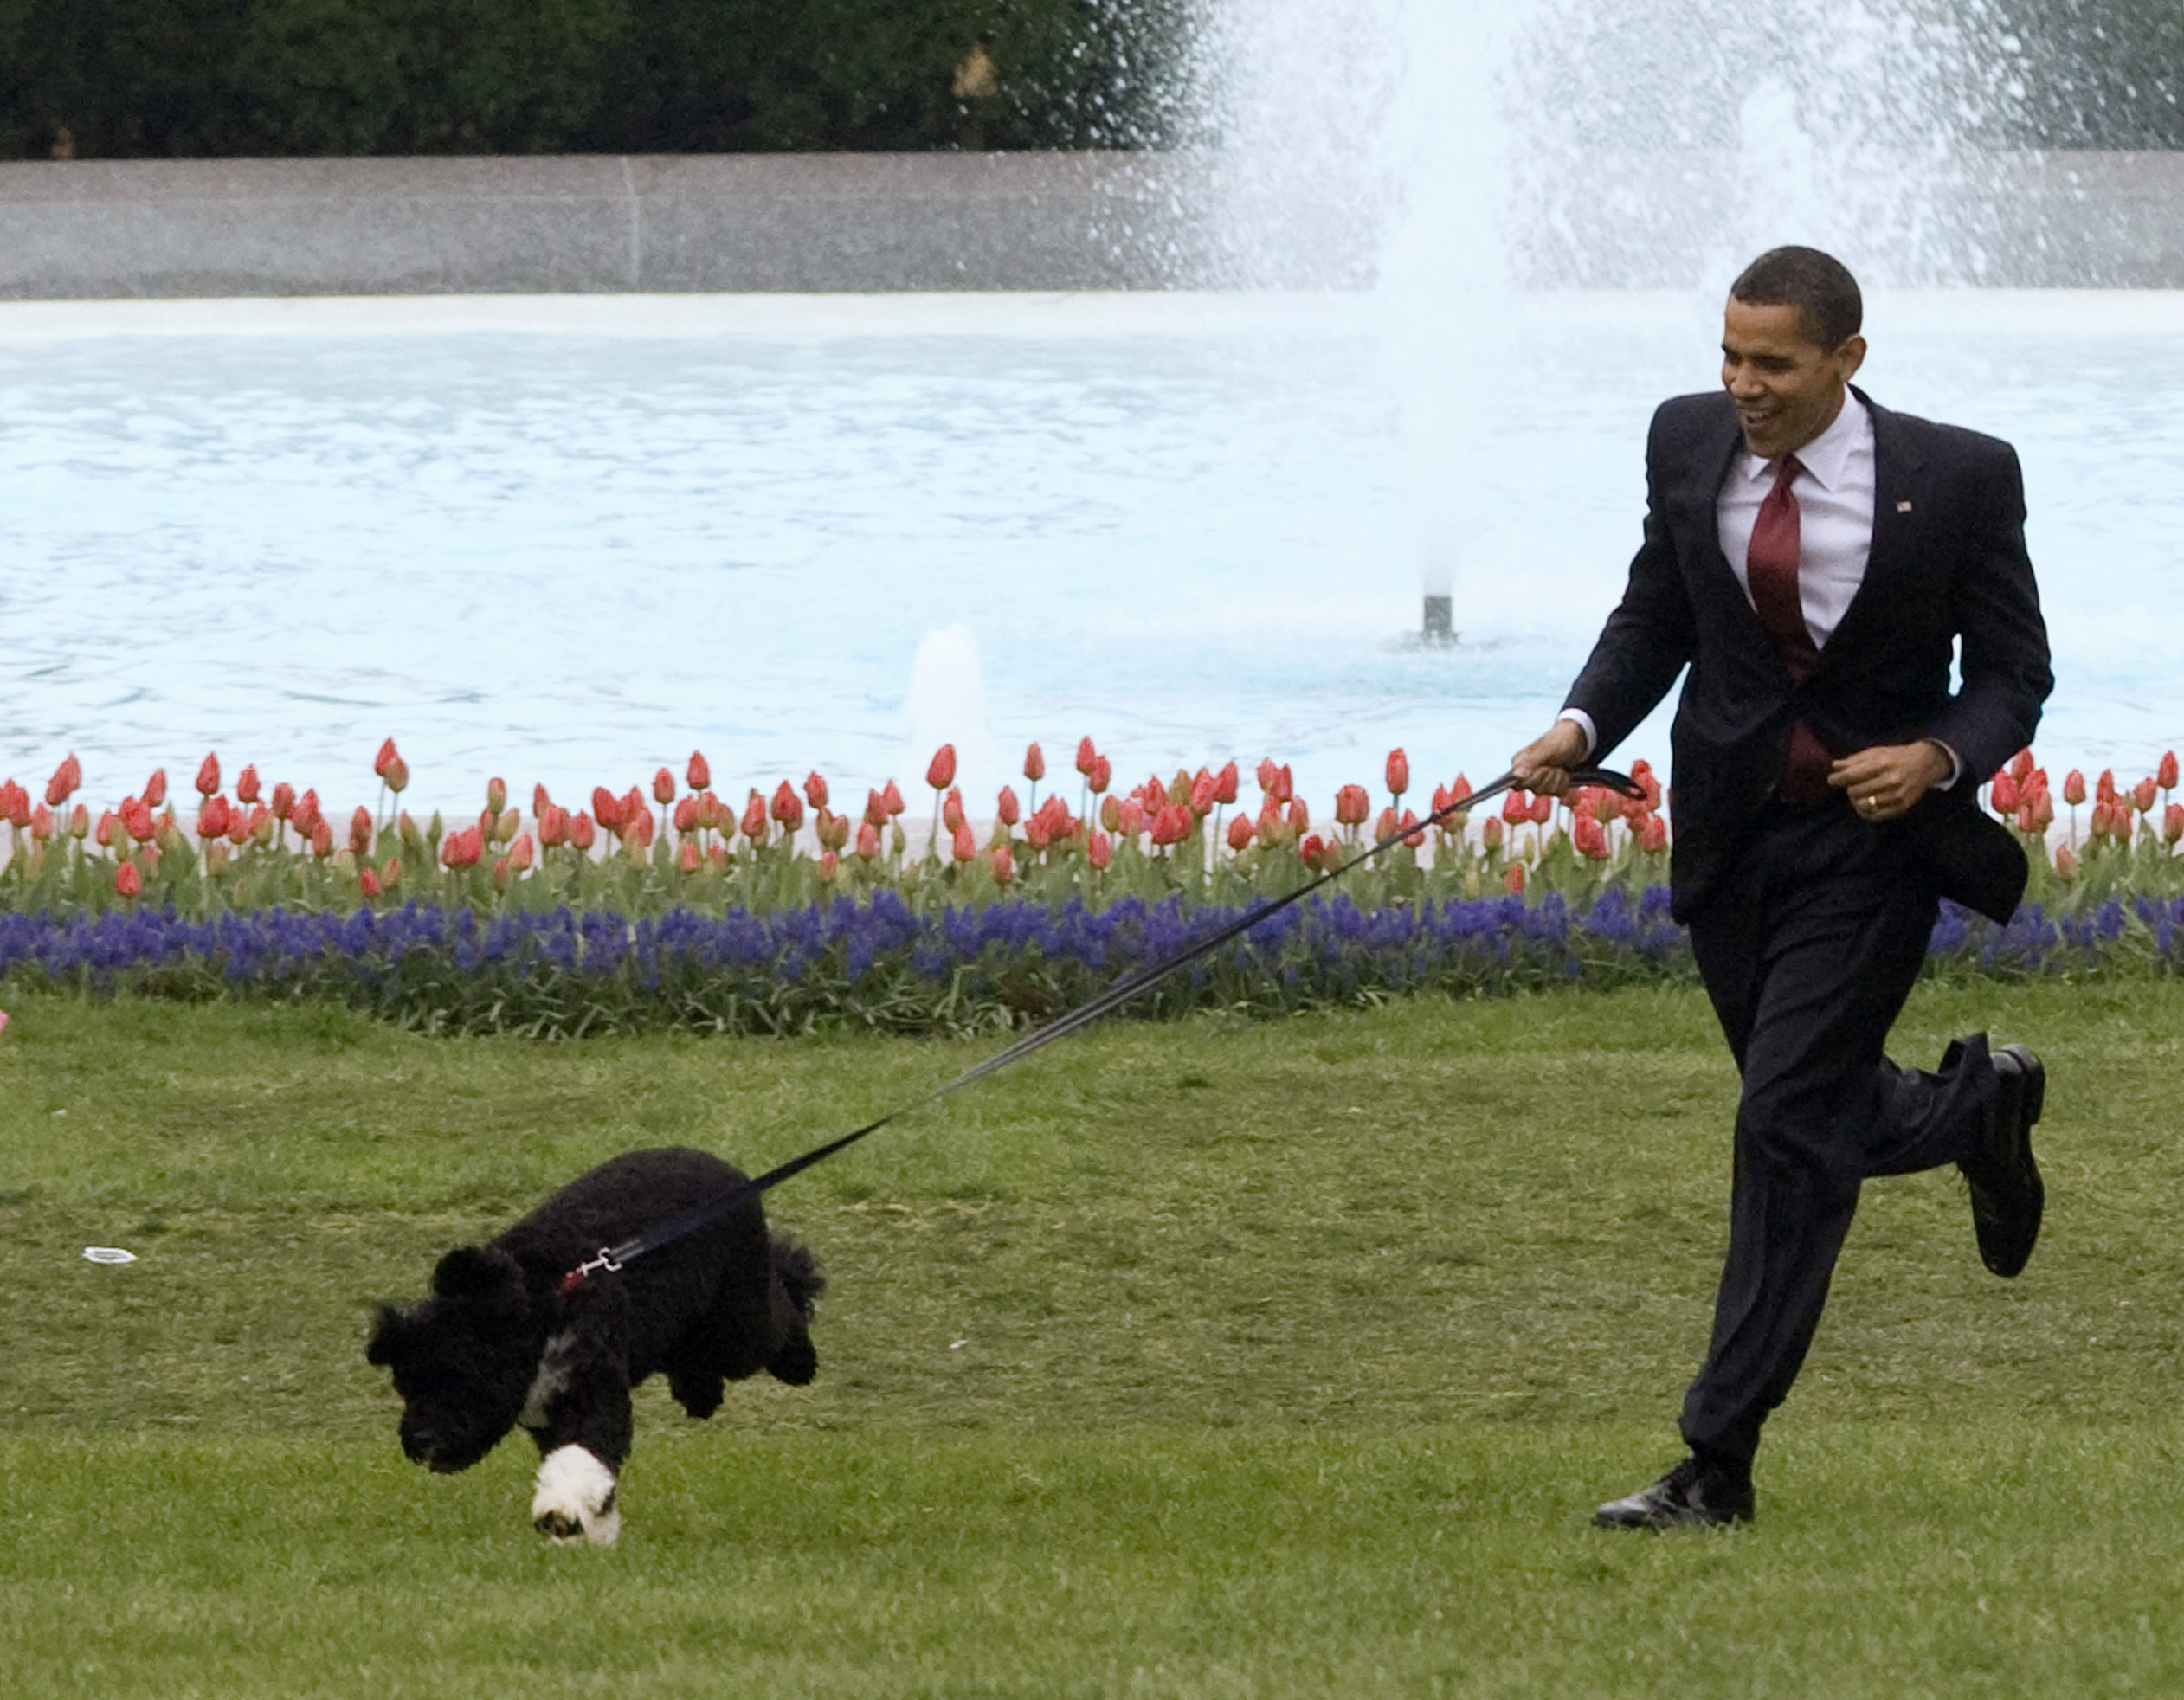 U.S. President Barack Obama presents the first family's new Portuguese Water Dog puppy, Bo, on the South Lawn at the White House in Washington on April 14, 2009.